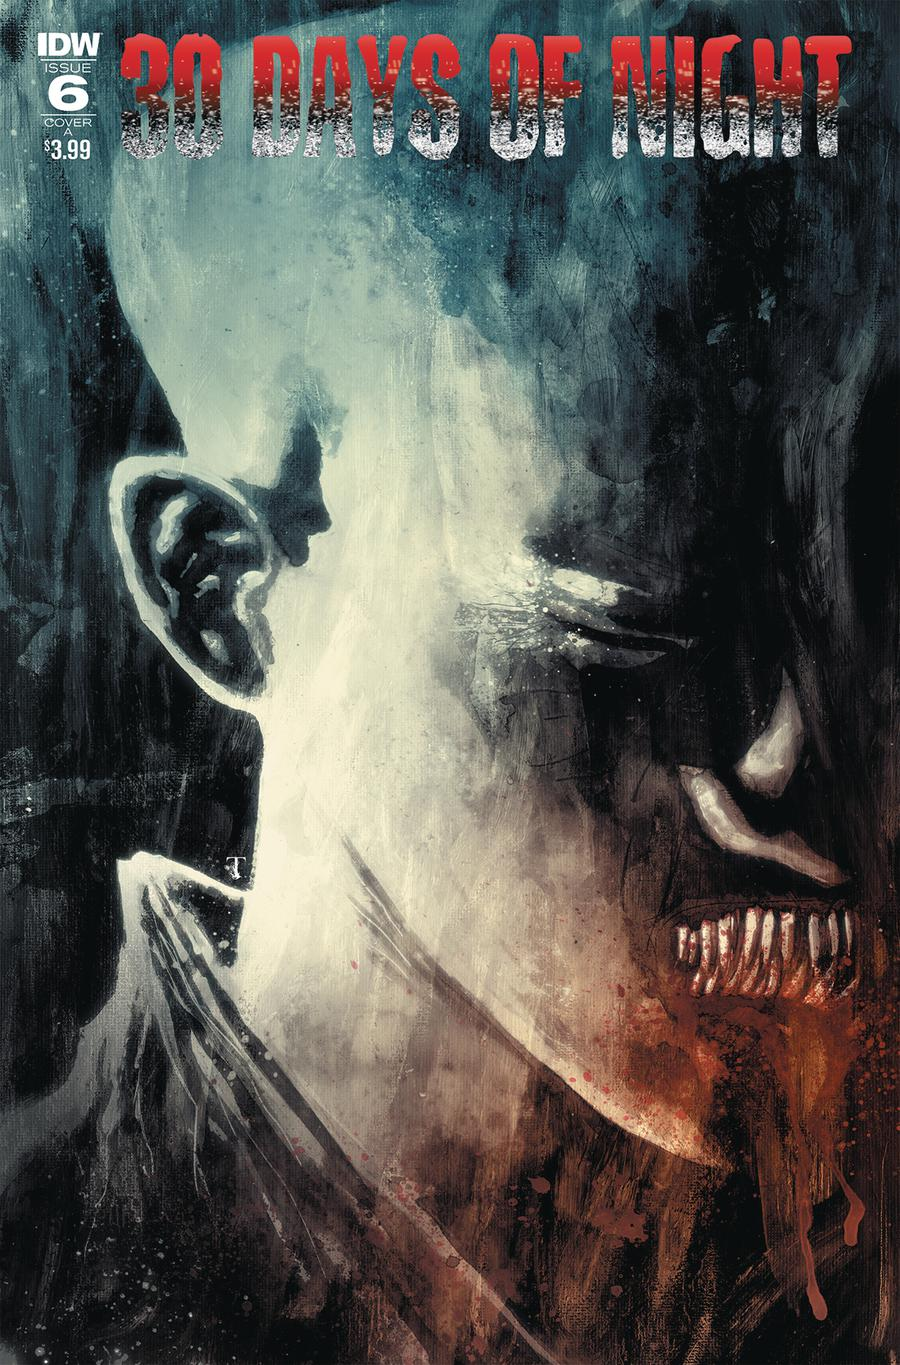 30 Days Of Night Vol 3 #6 Cover A Regular Ben Templesmith Cover